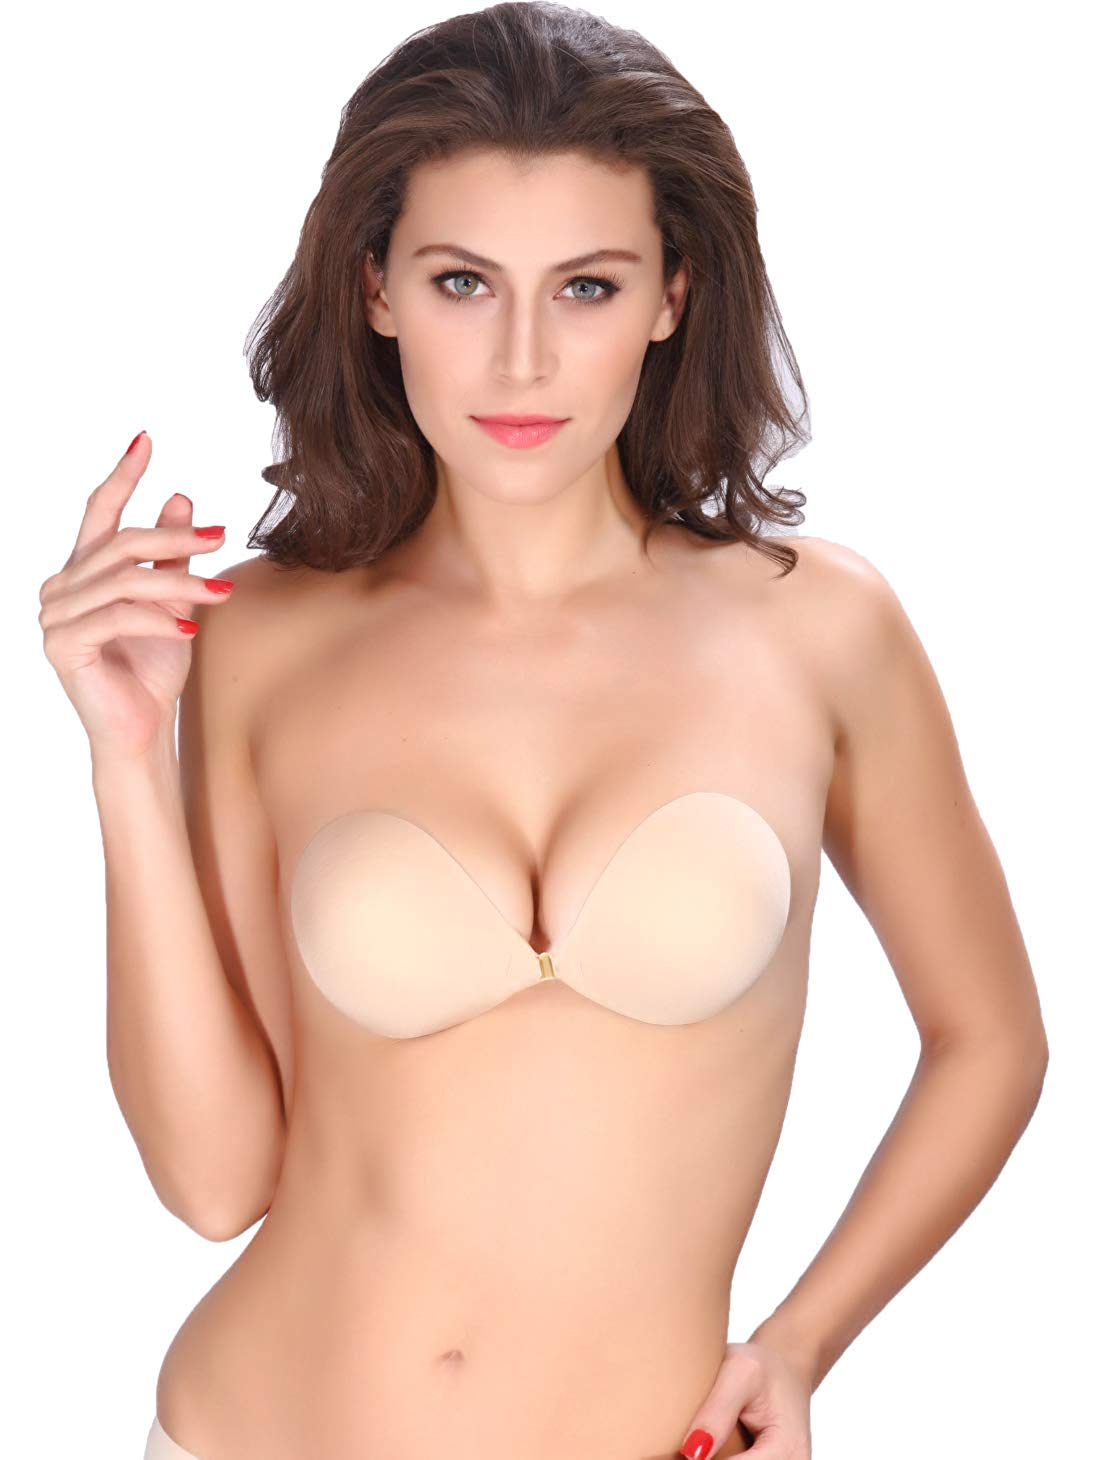 0426257e6e838 Get Quotations · AVIGOR Women s Strapless Bra Self Adhesive Silicone Sticky  Bras Reusable Invisible Backless for Women